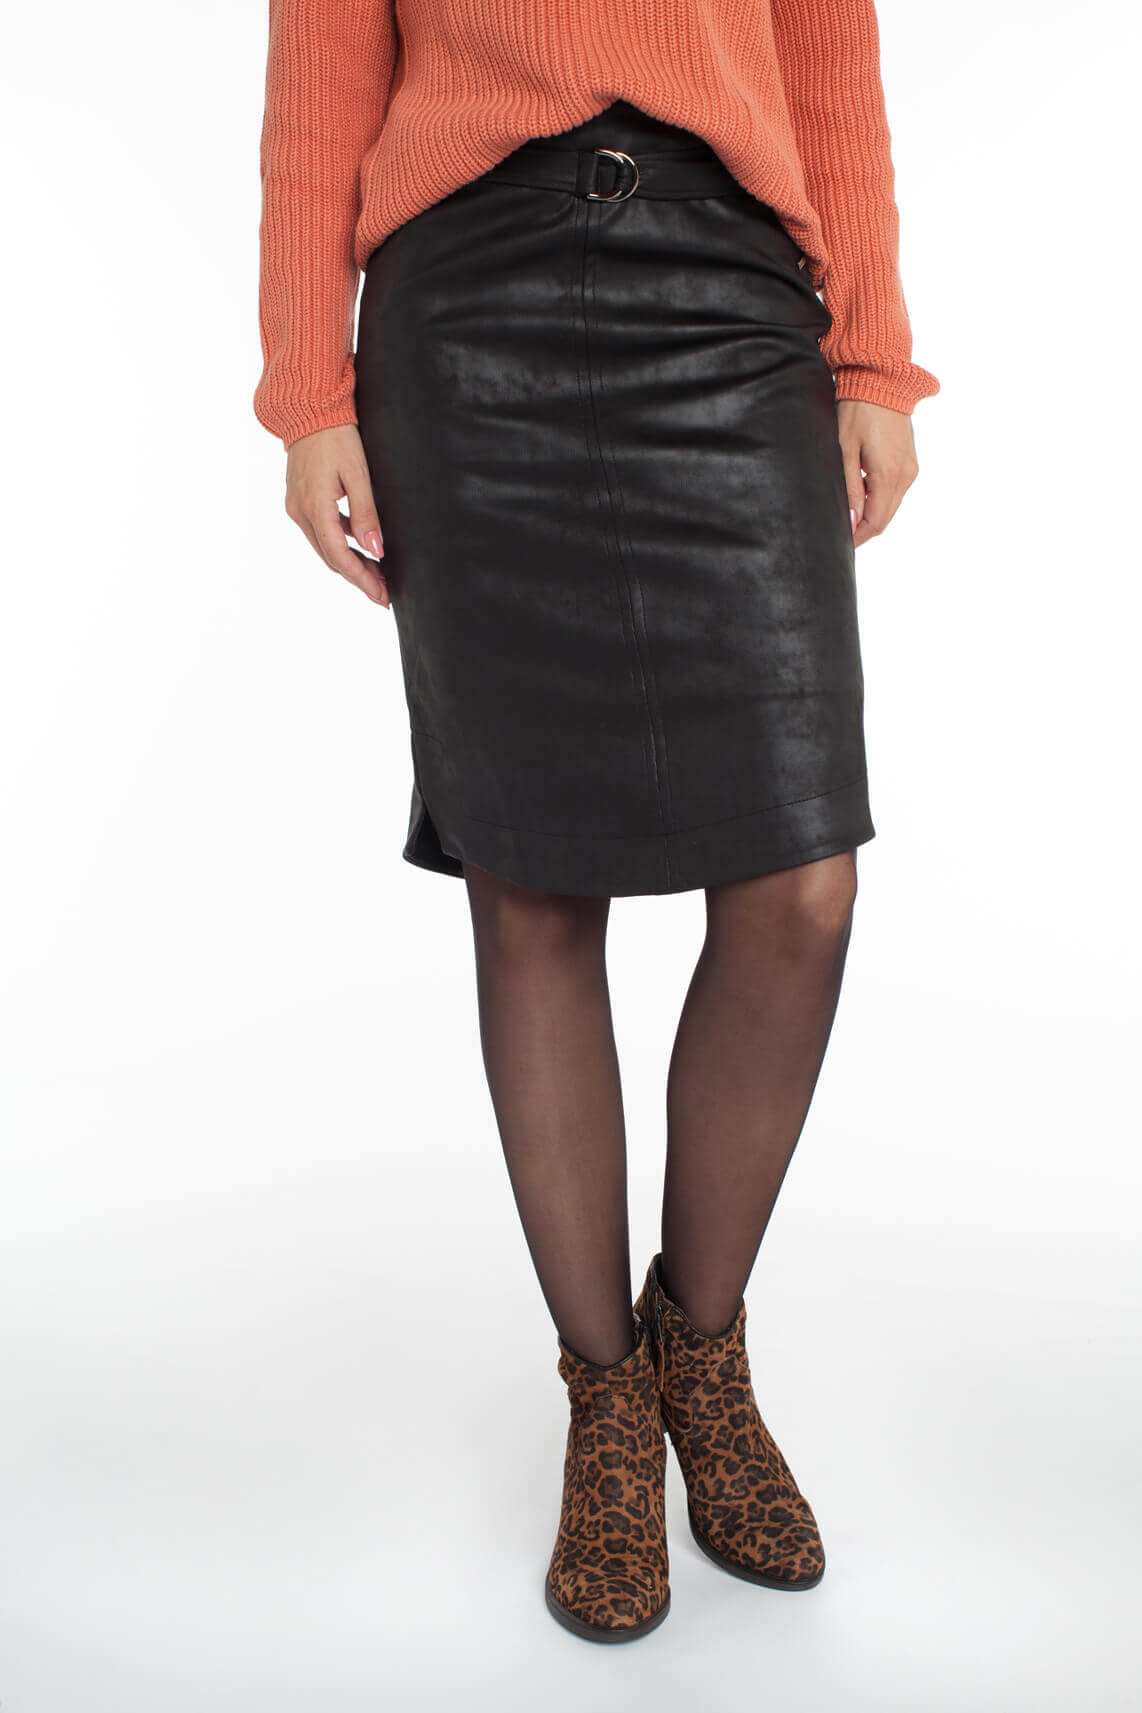 Anna Dames Fake leather rok met ceintuur zwart